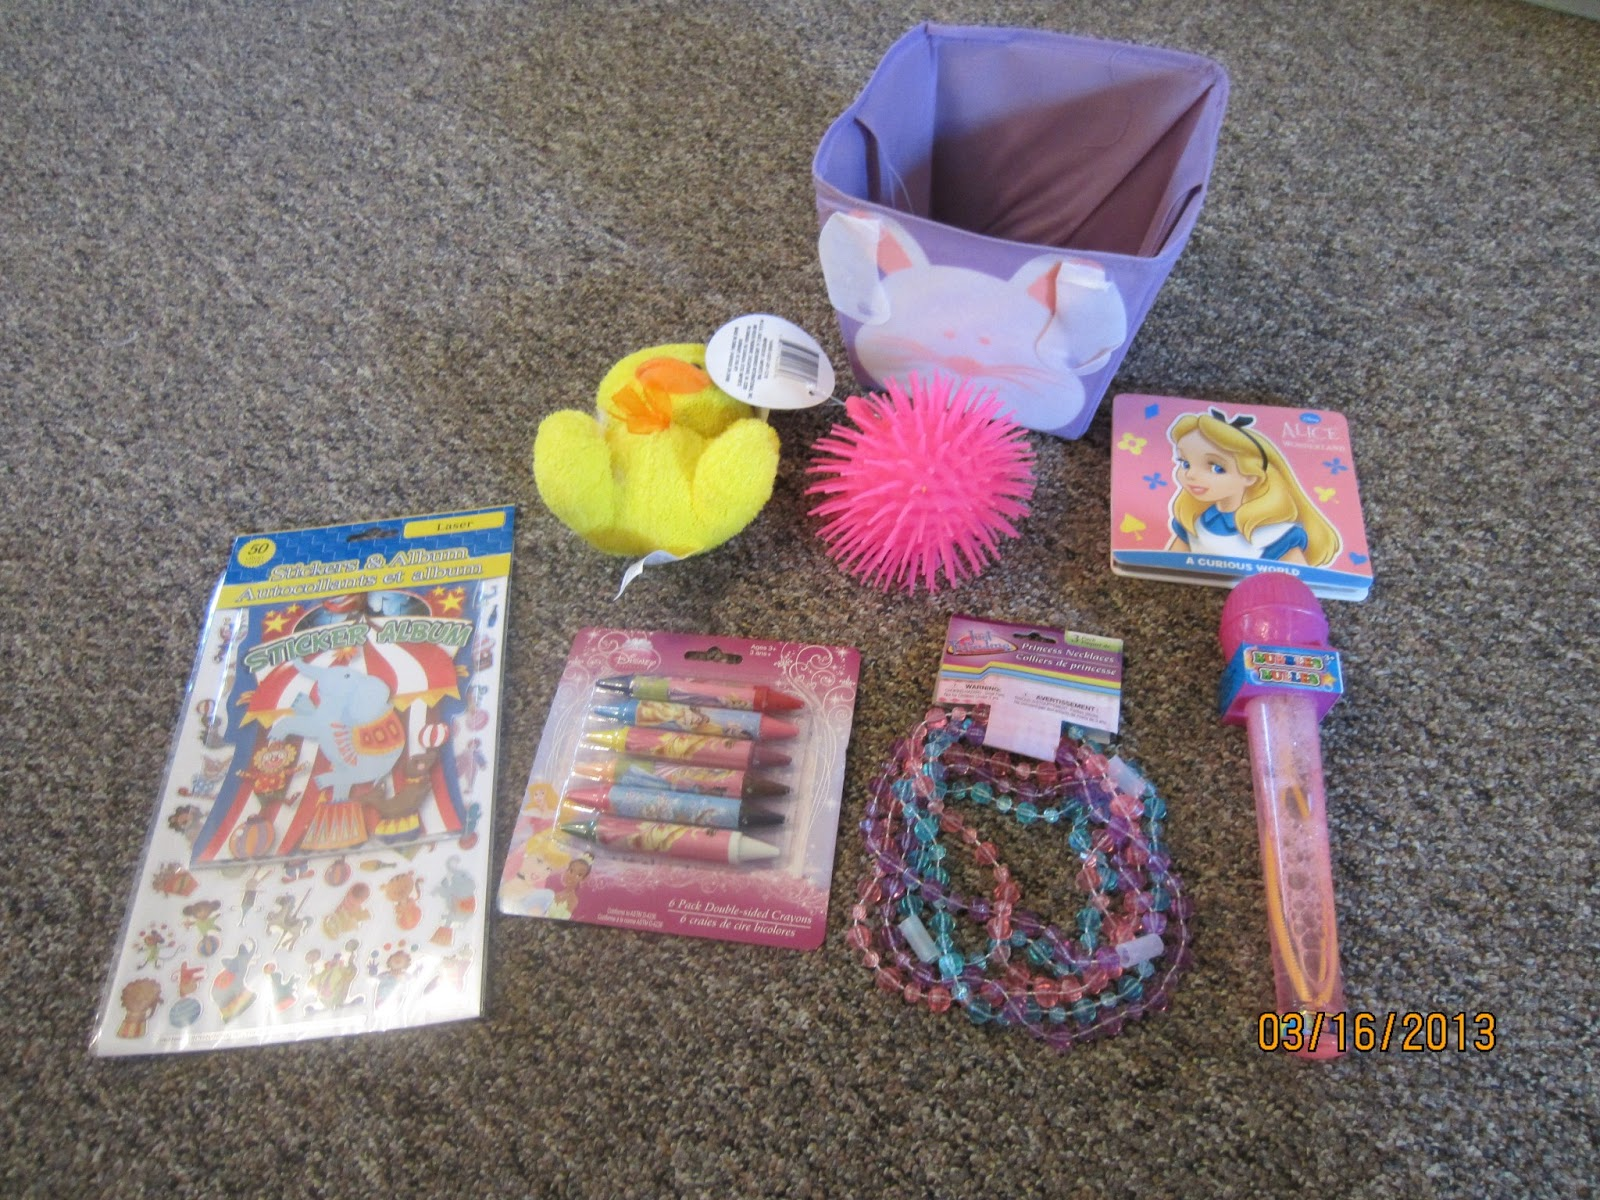 The best is yet to come candy free easter basket for a 1 year old so at the dollar tree we scored her super cute purple easter basket bubbles an alice in wonderland board book a 3 pack of necklaces negle Gallery